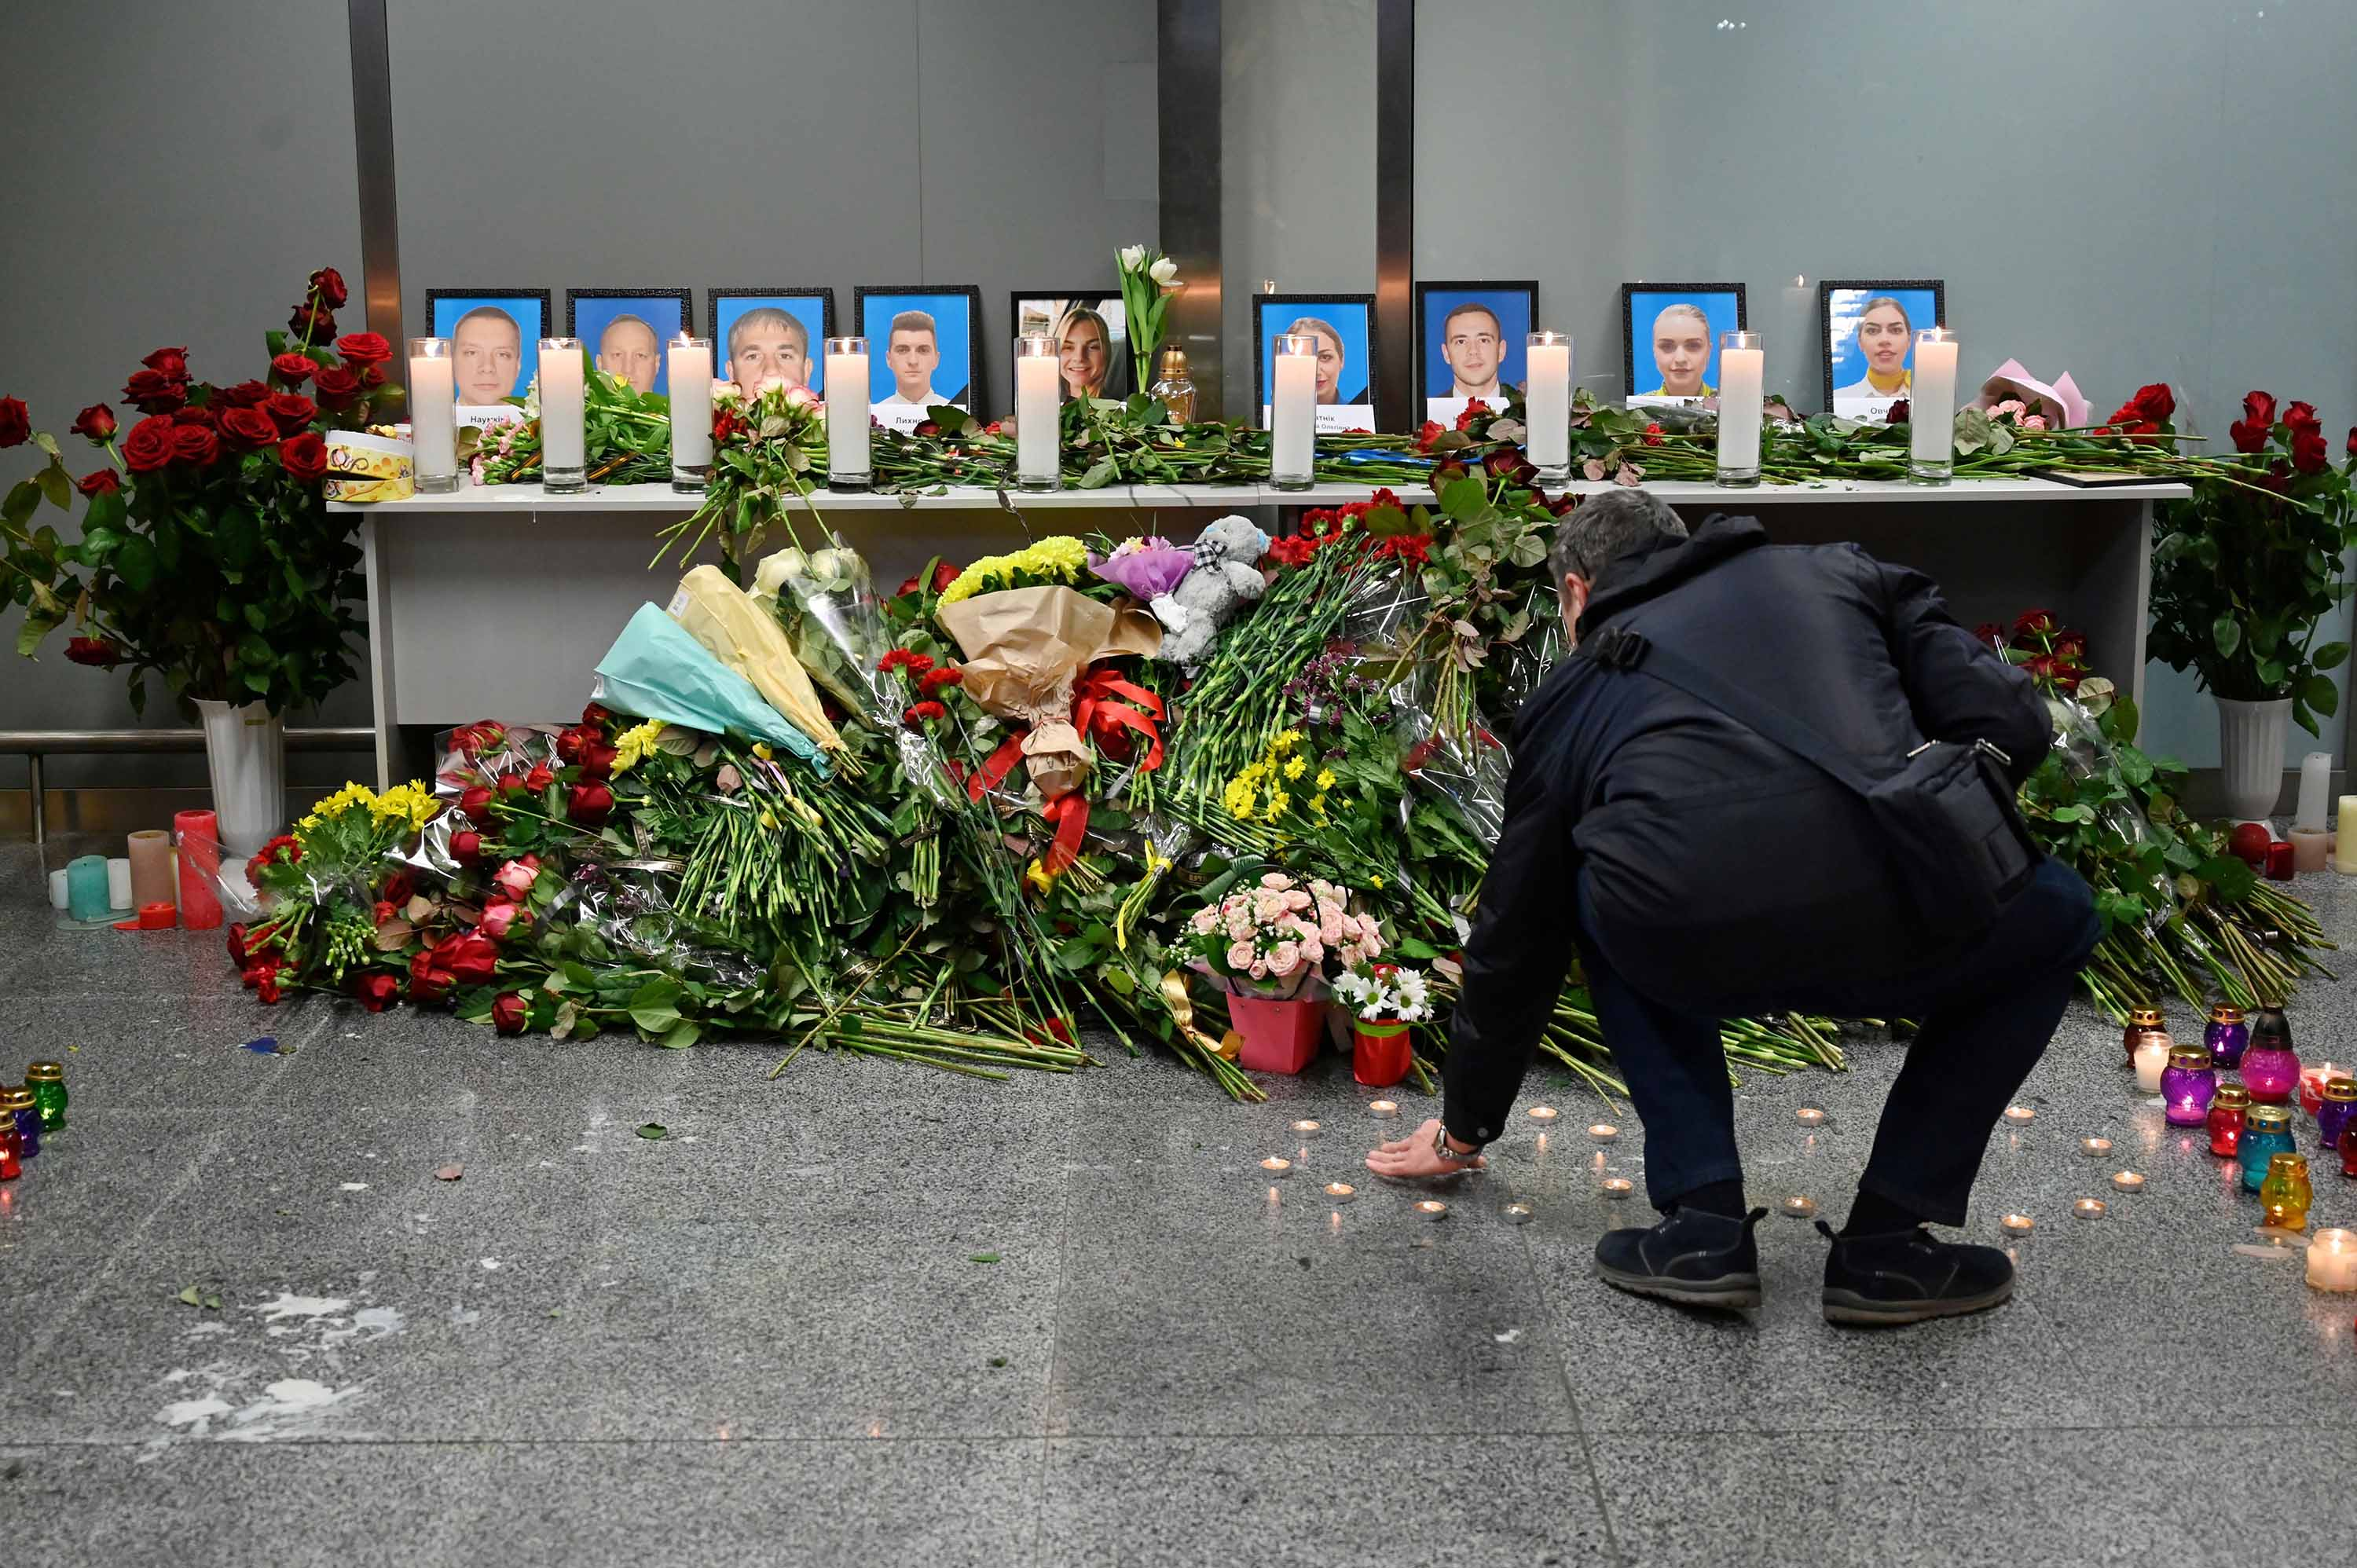 A man visits a memorial set up at the Boryspil airport outside Kiev, Ukraine for victims of the crash, on January 8.